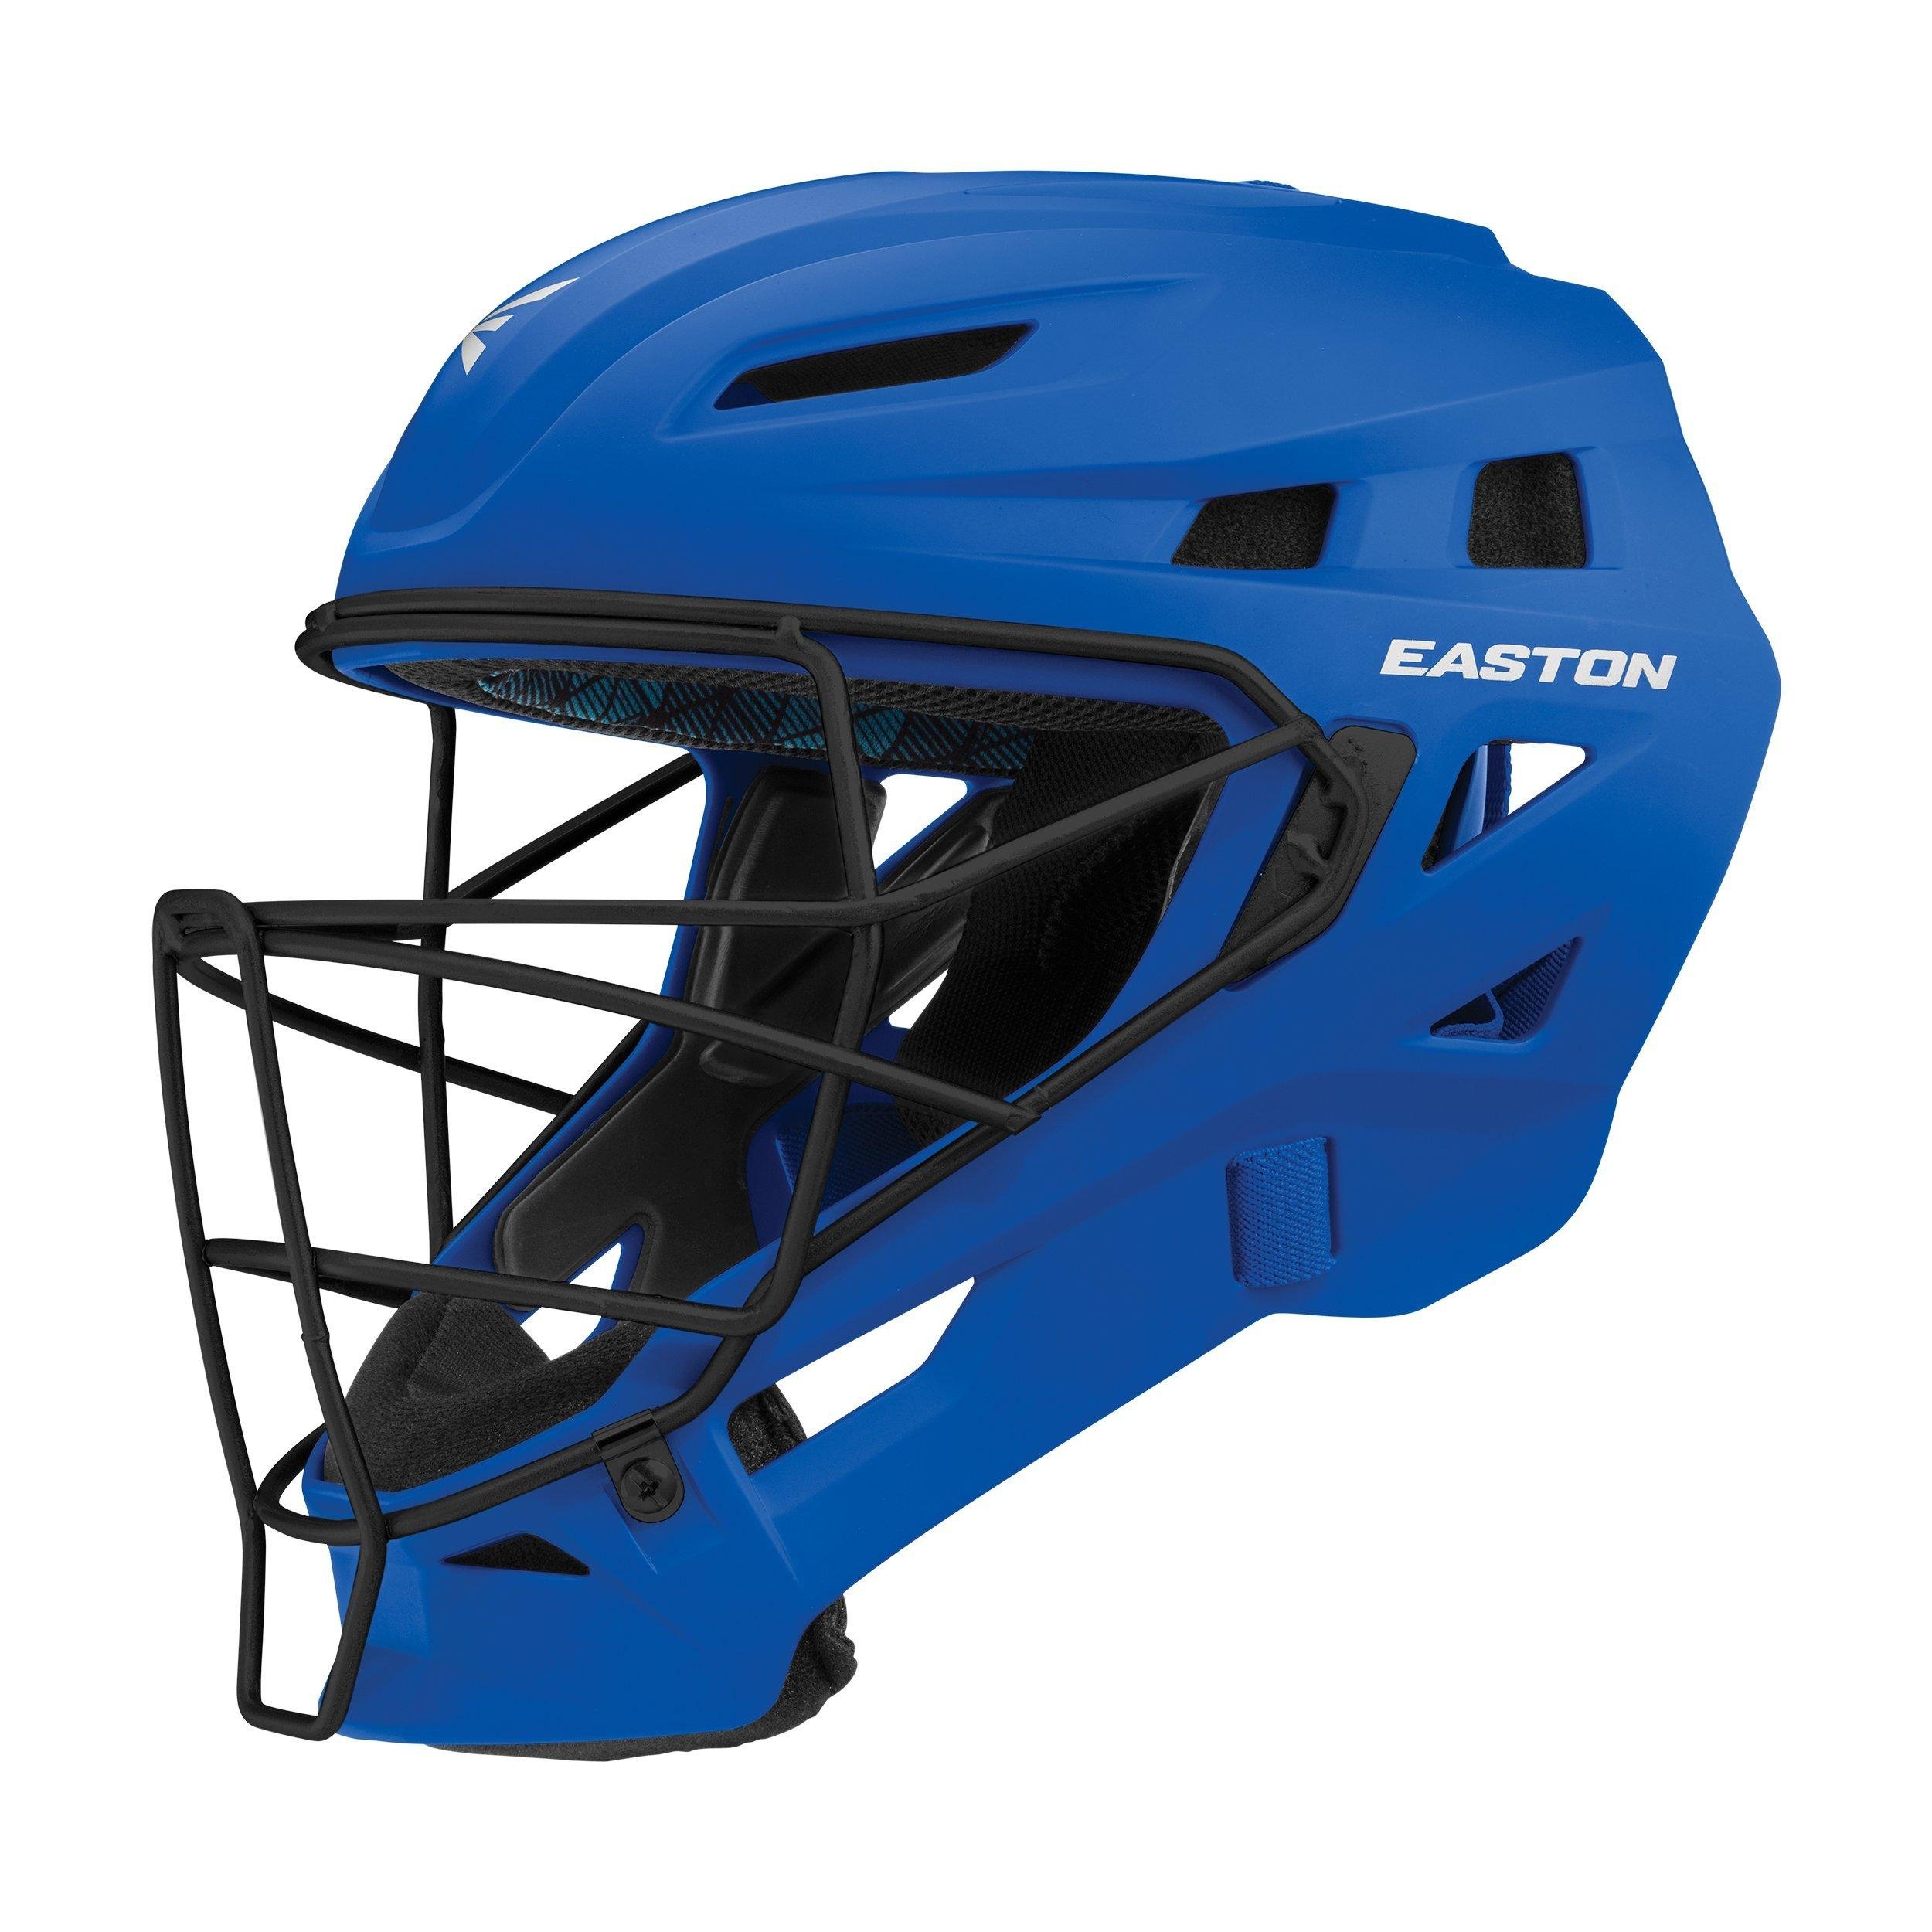 Easton Elite X Baseball Catcher's Helmet